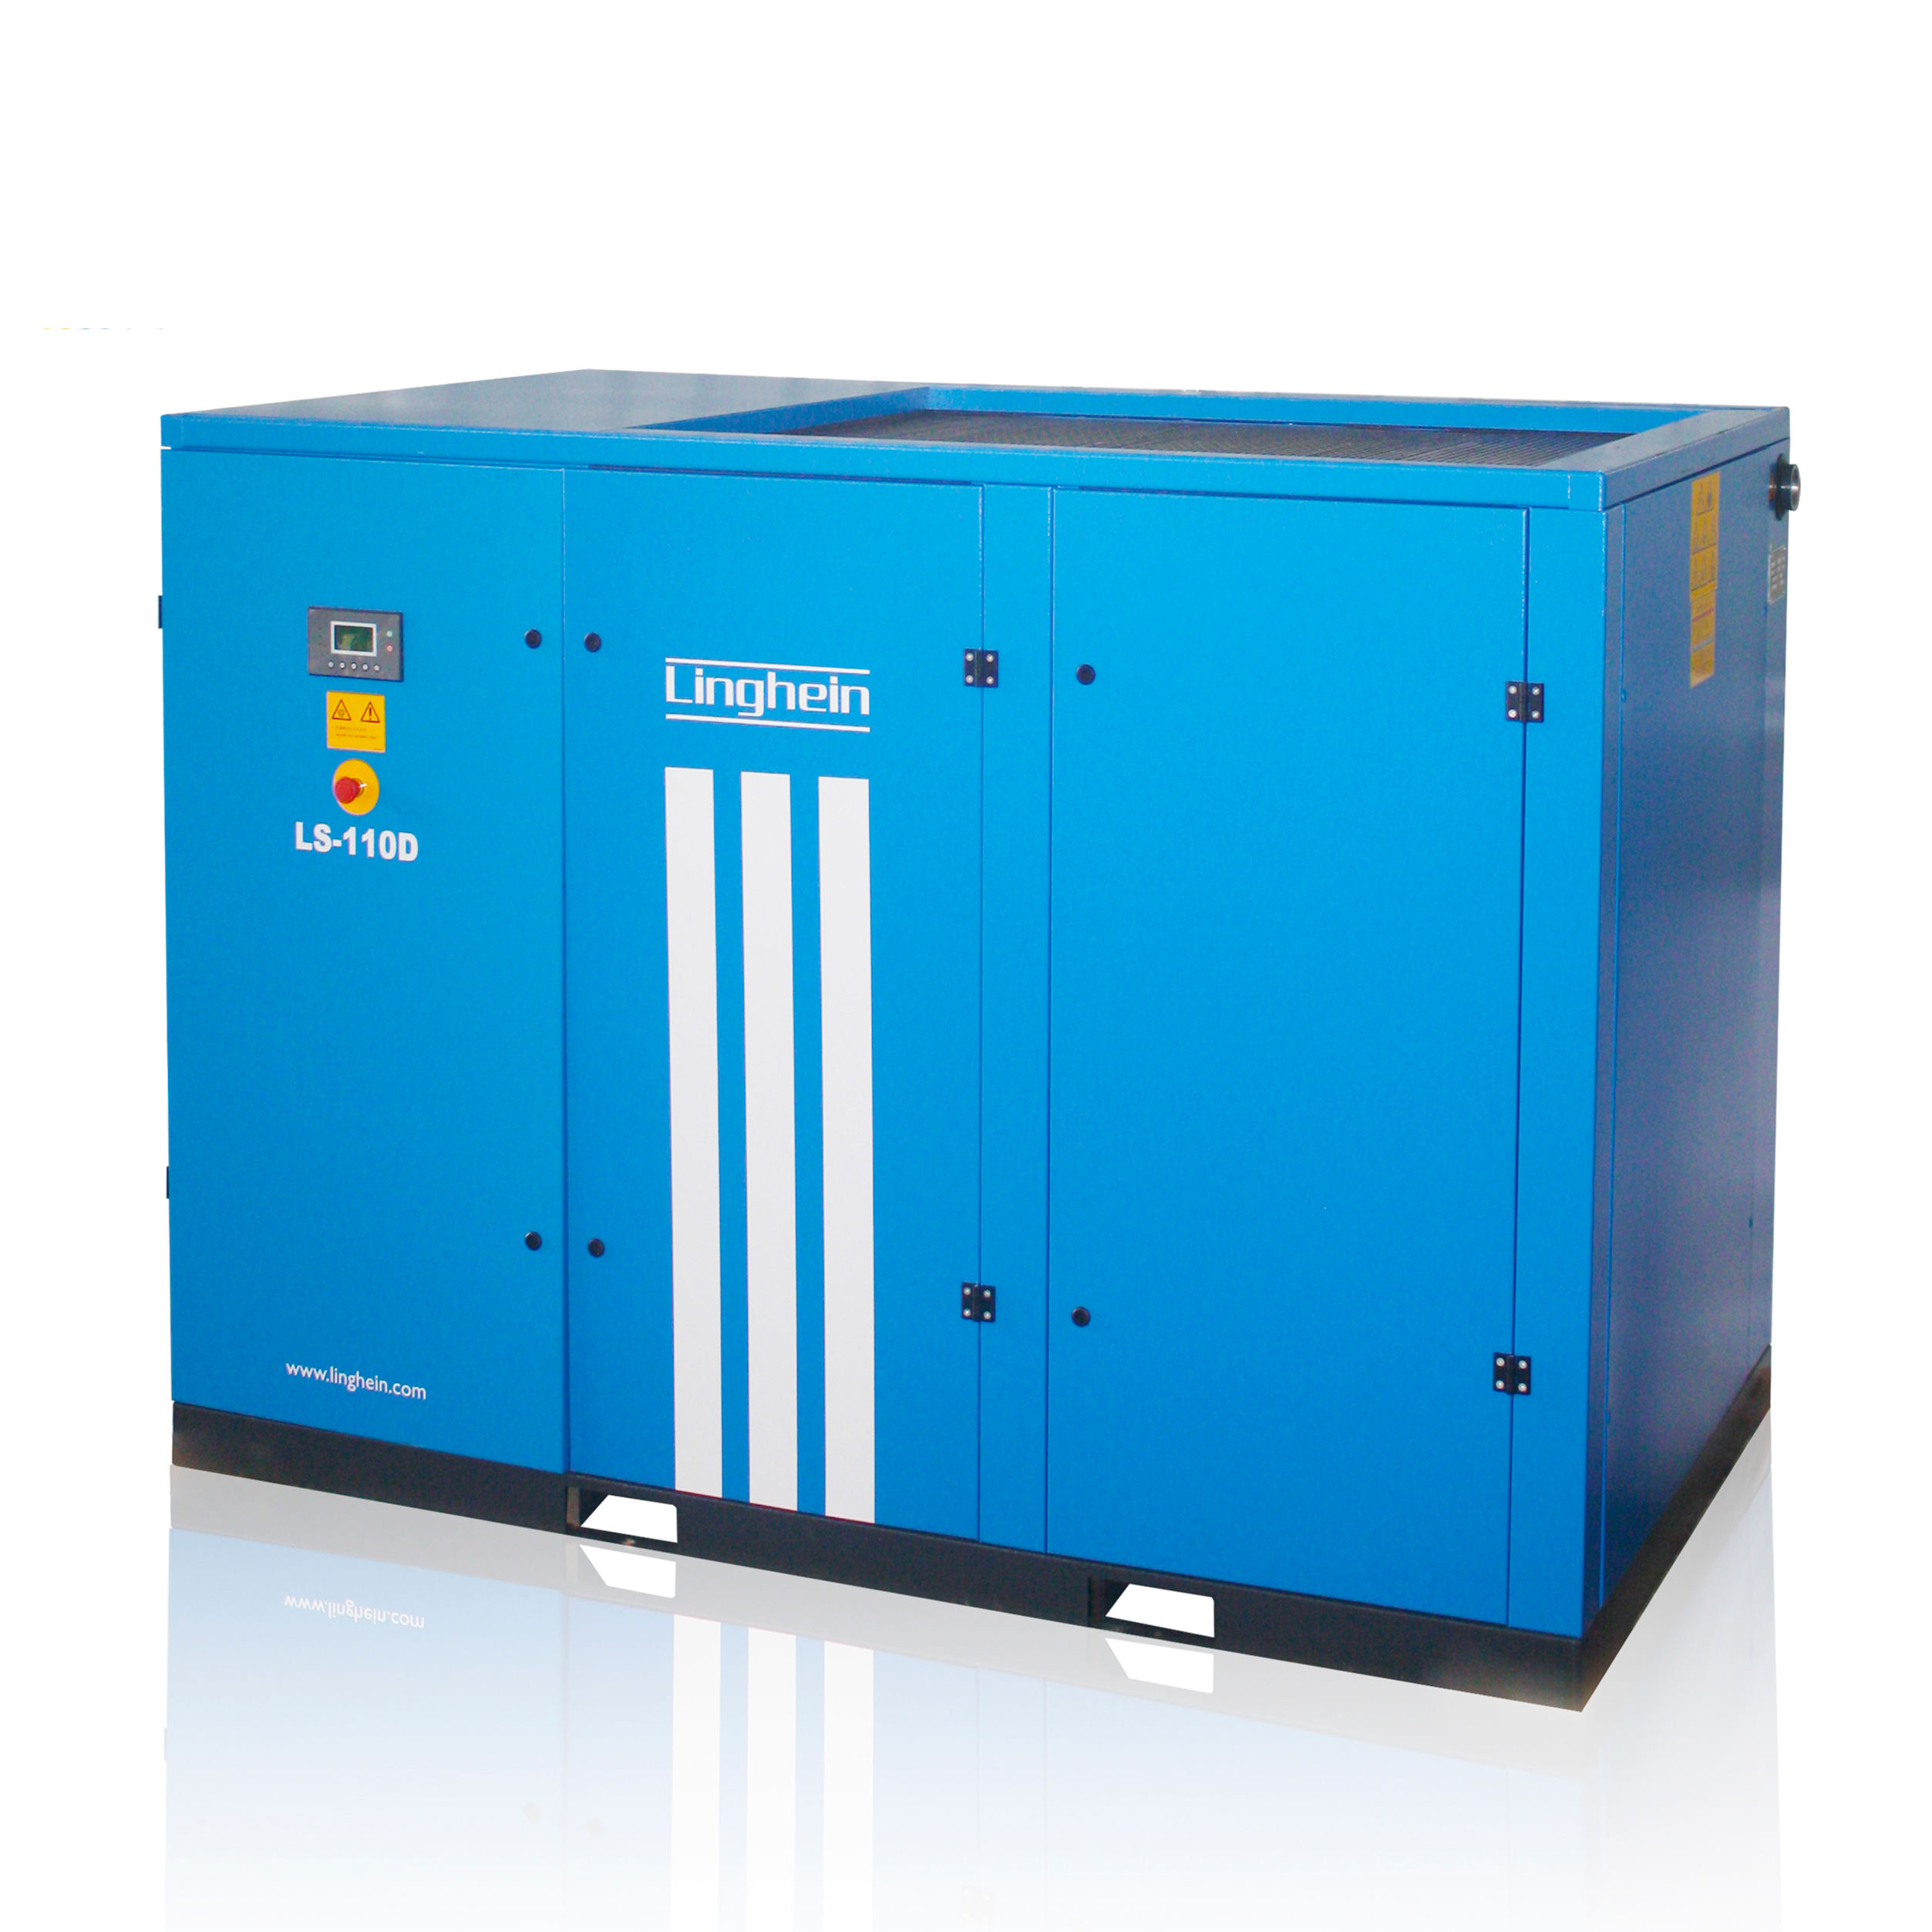 New-arrival LINGHEIN 150HP/110KW stable air screw compressor under AC group ,scroll compressor,air-compressors